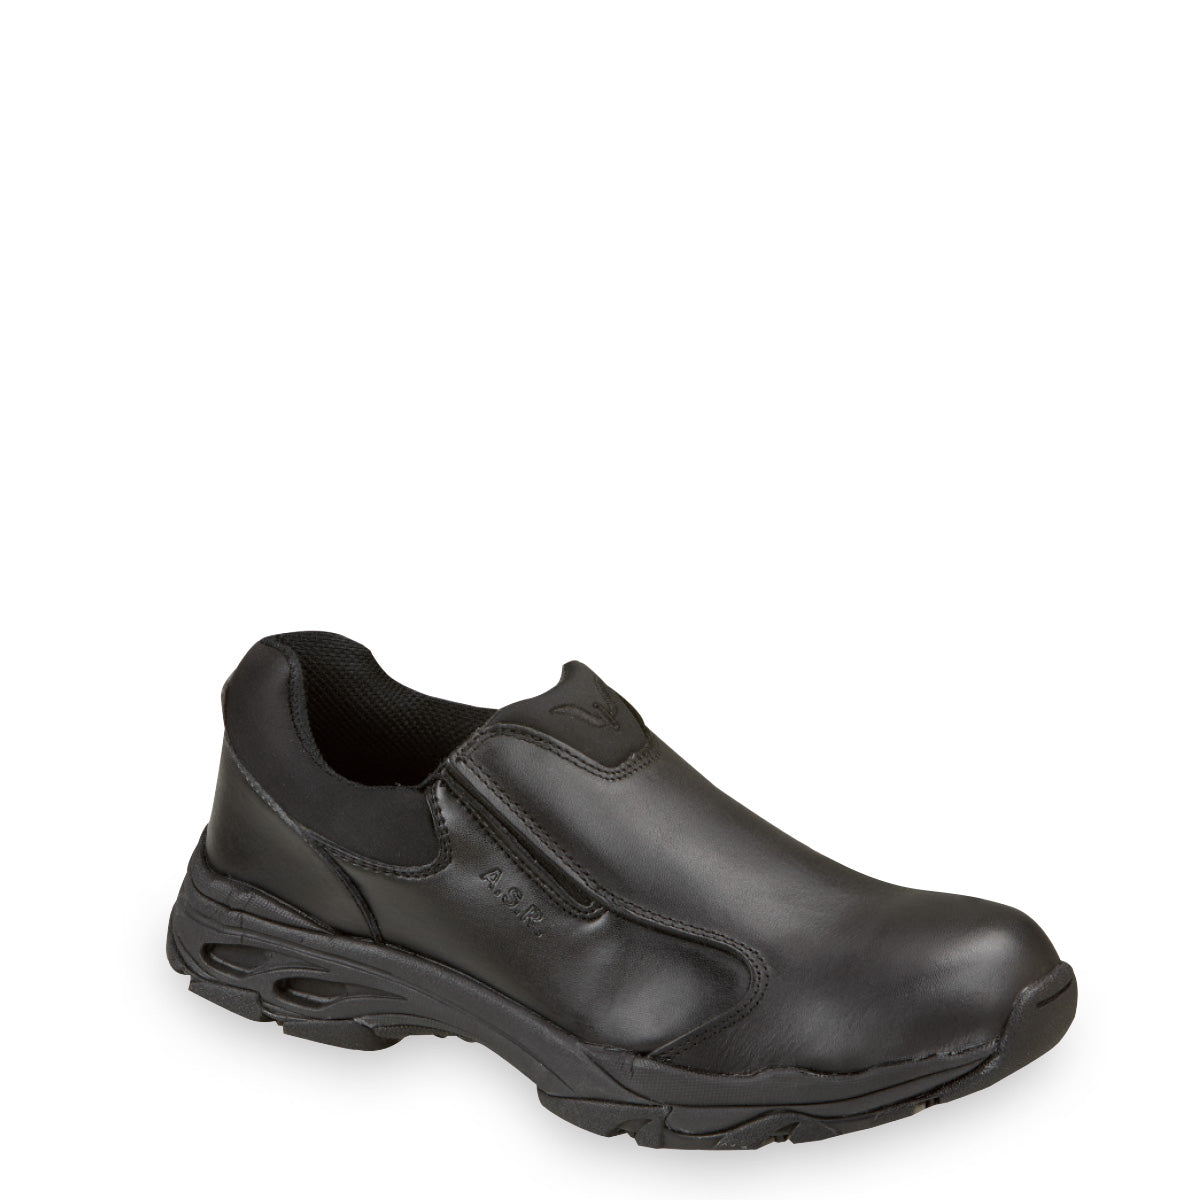 Thorogood ASR SERIES – SLIP-ON OXFORD